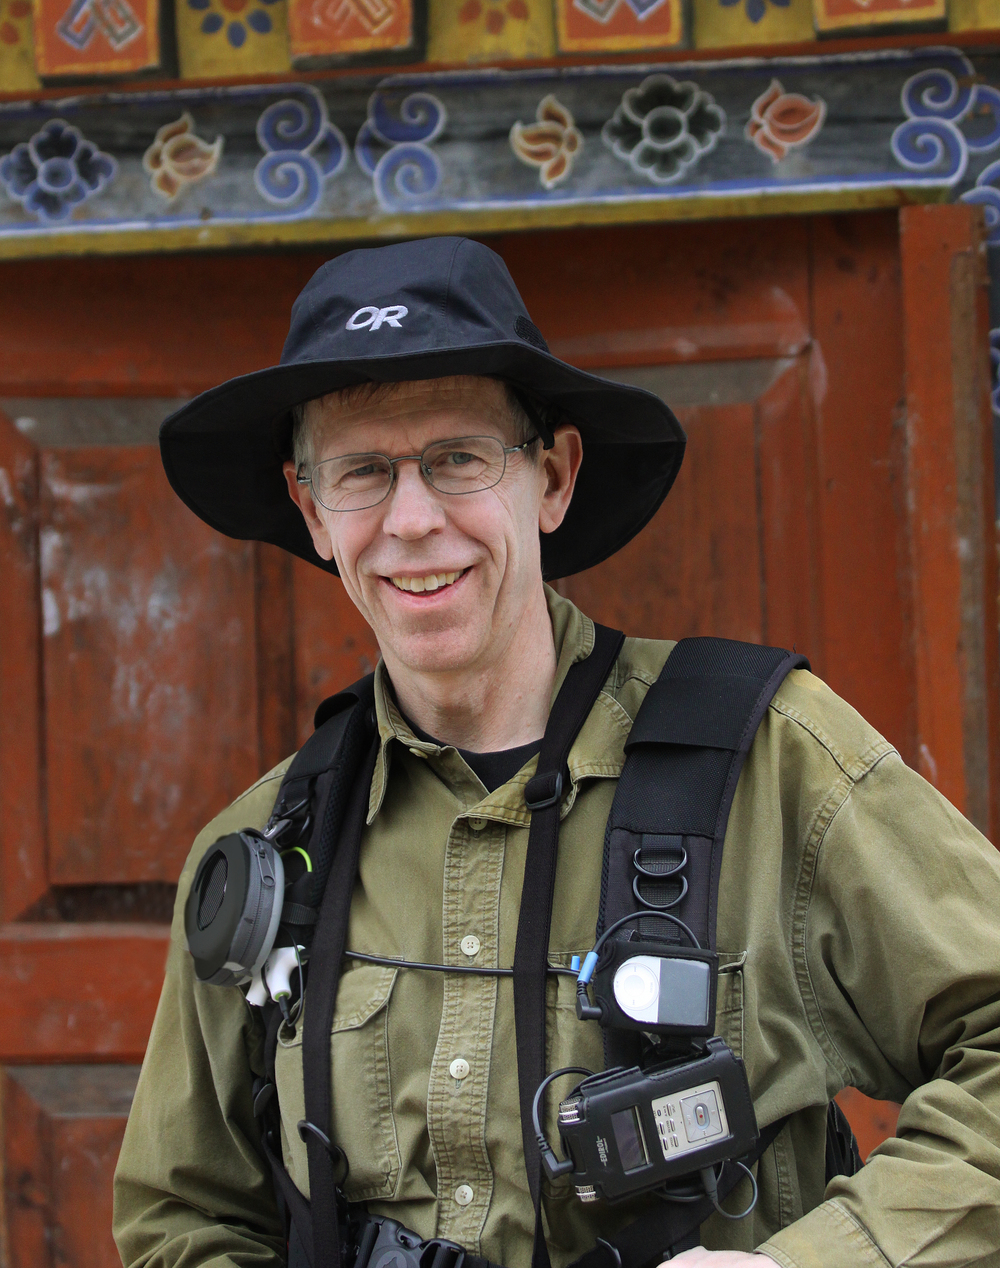 Tom Stephenson's articles and photos have appeared in Birding and Bird Watcher's Digest, at Surfbirds.com, and in the Handbook of the Birds of the World. He has guided groups across the United States and Asia. A musician, he has had several Grammy and Academy Award winners as clients, and was director of technology at Roland Corporation.